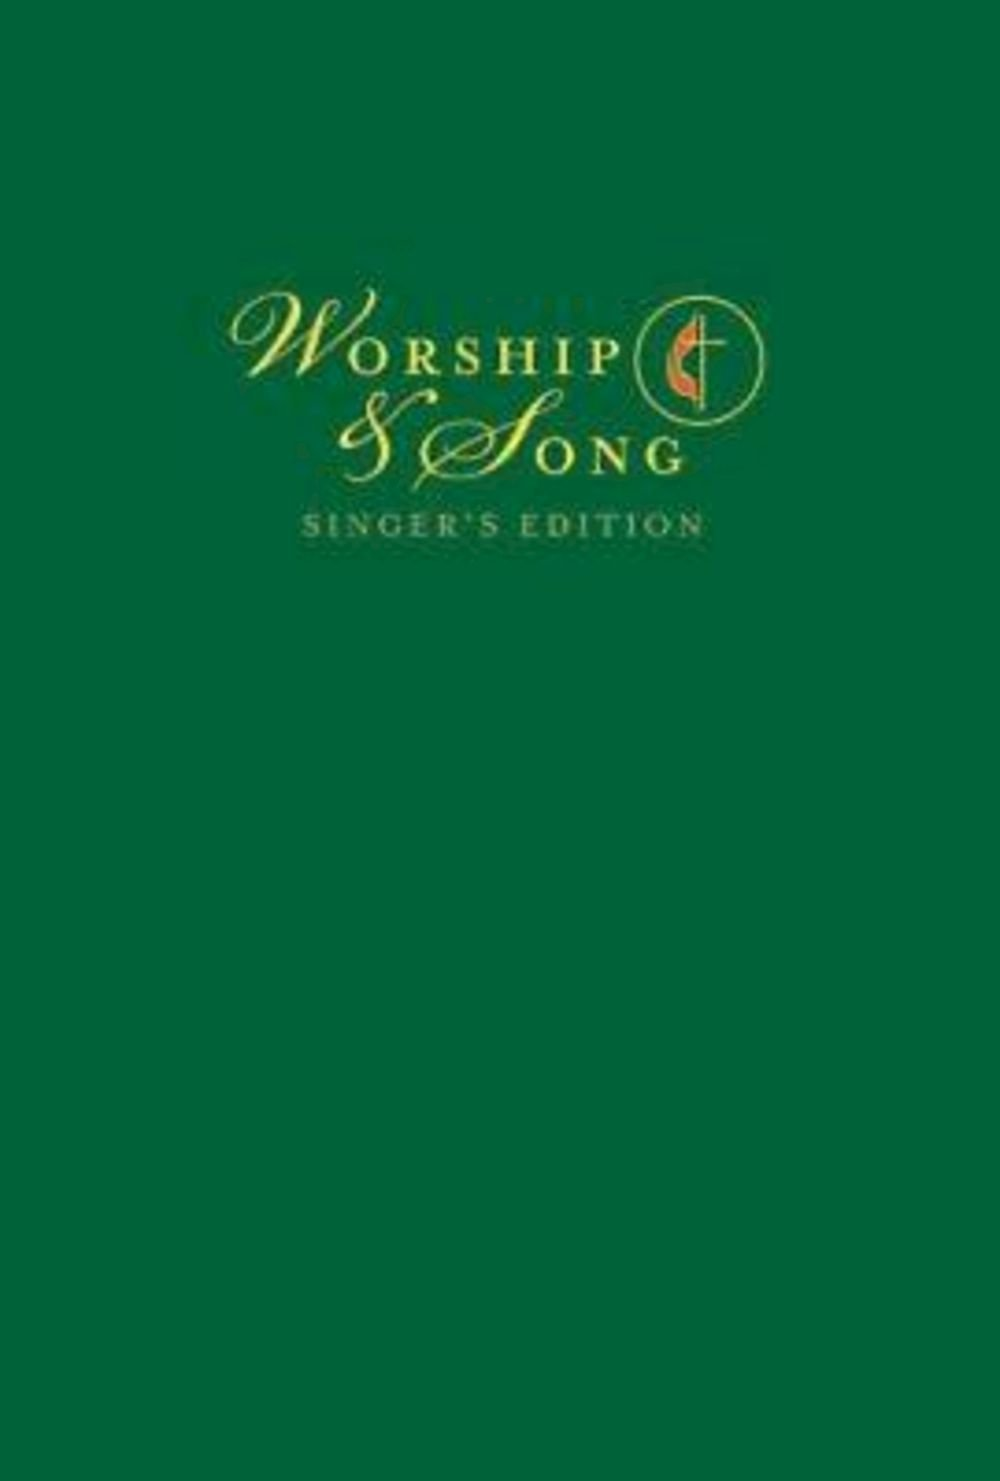 Worship song singers edition dean mcintyre anne burnette hook worship song singers edition dean mcintyre anne burnette hook lester ruth gary alan smith 9781426709951 amazon books fandeluxe Gallery